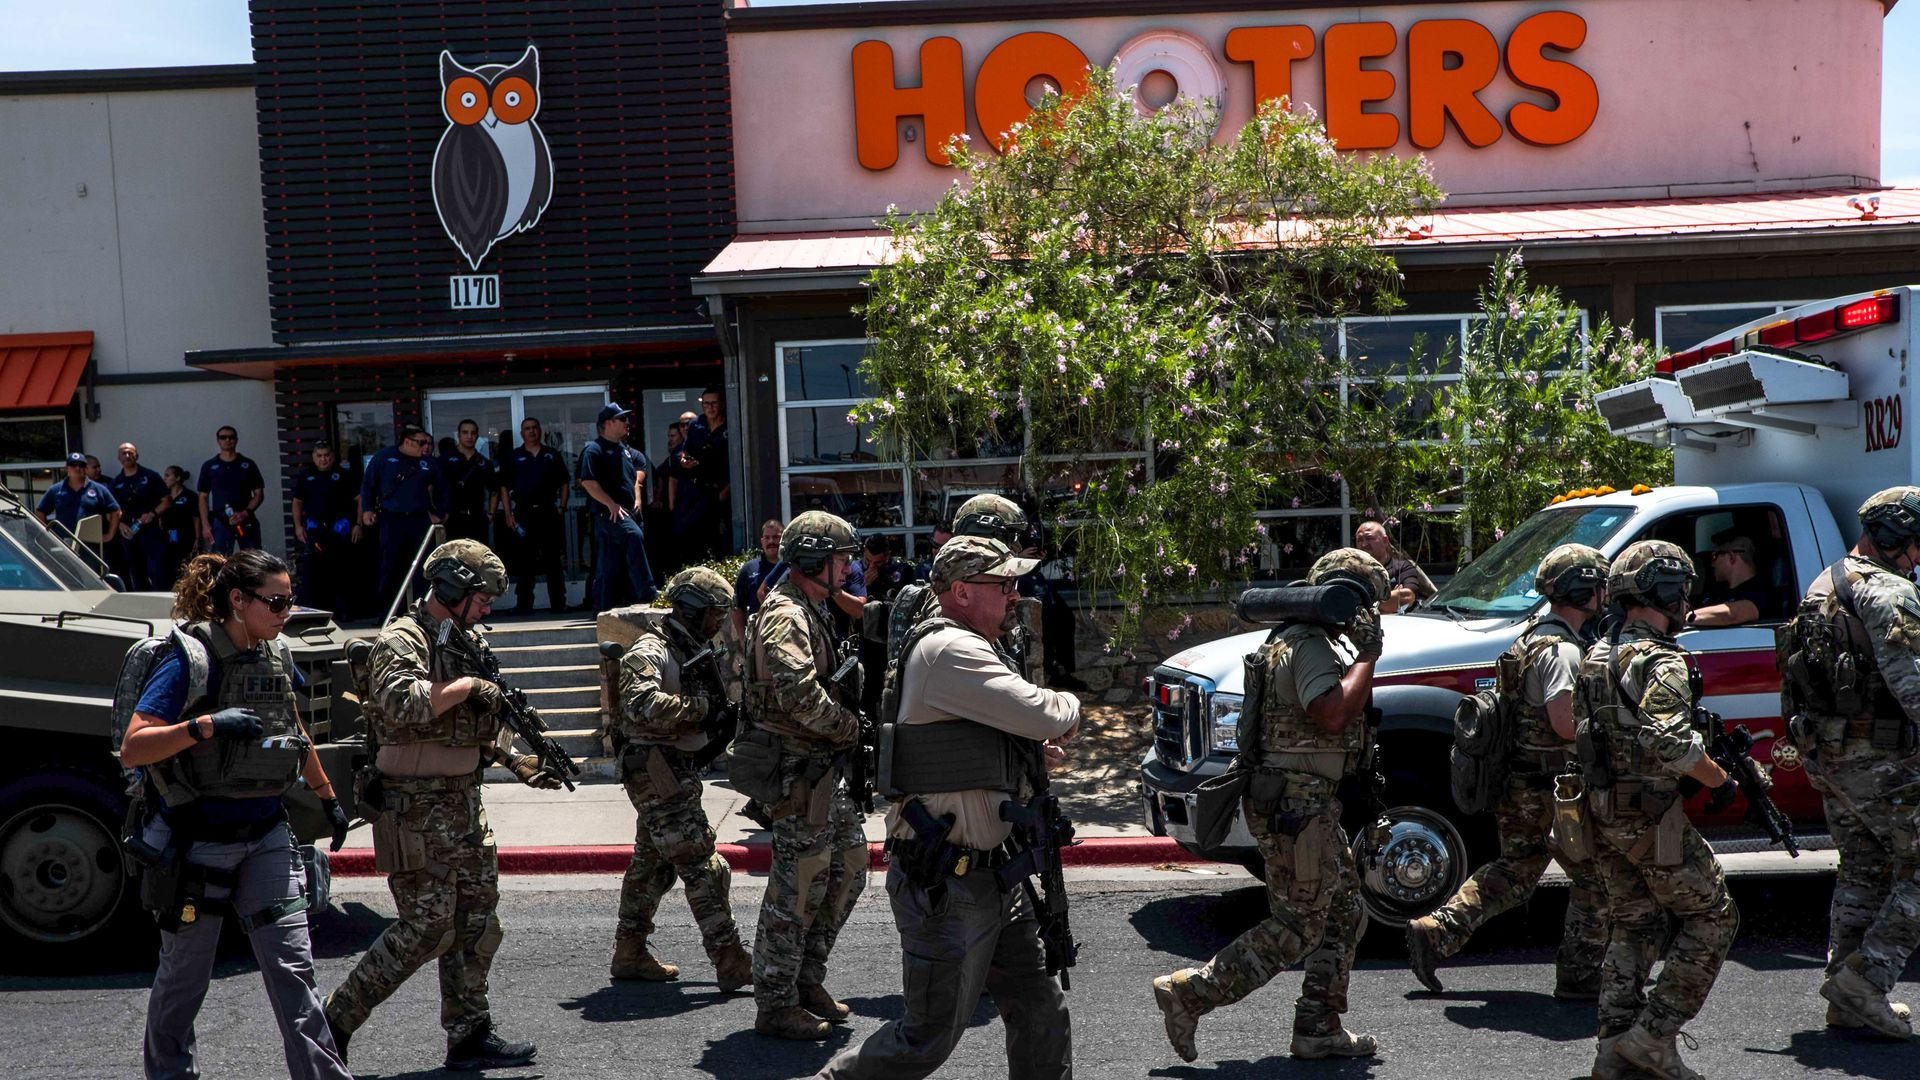 In this image, armed and fatigued officers hold rifles while walking past a Hooter's.